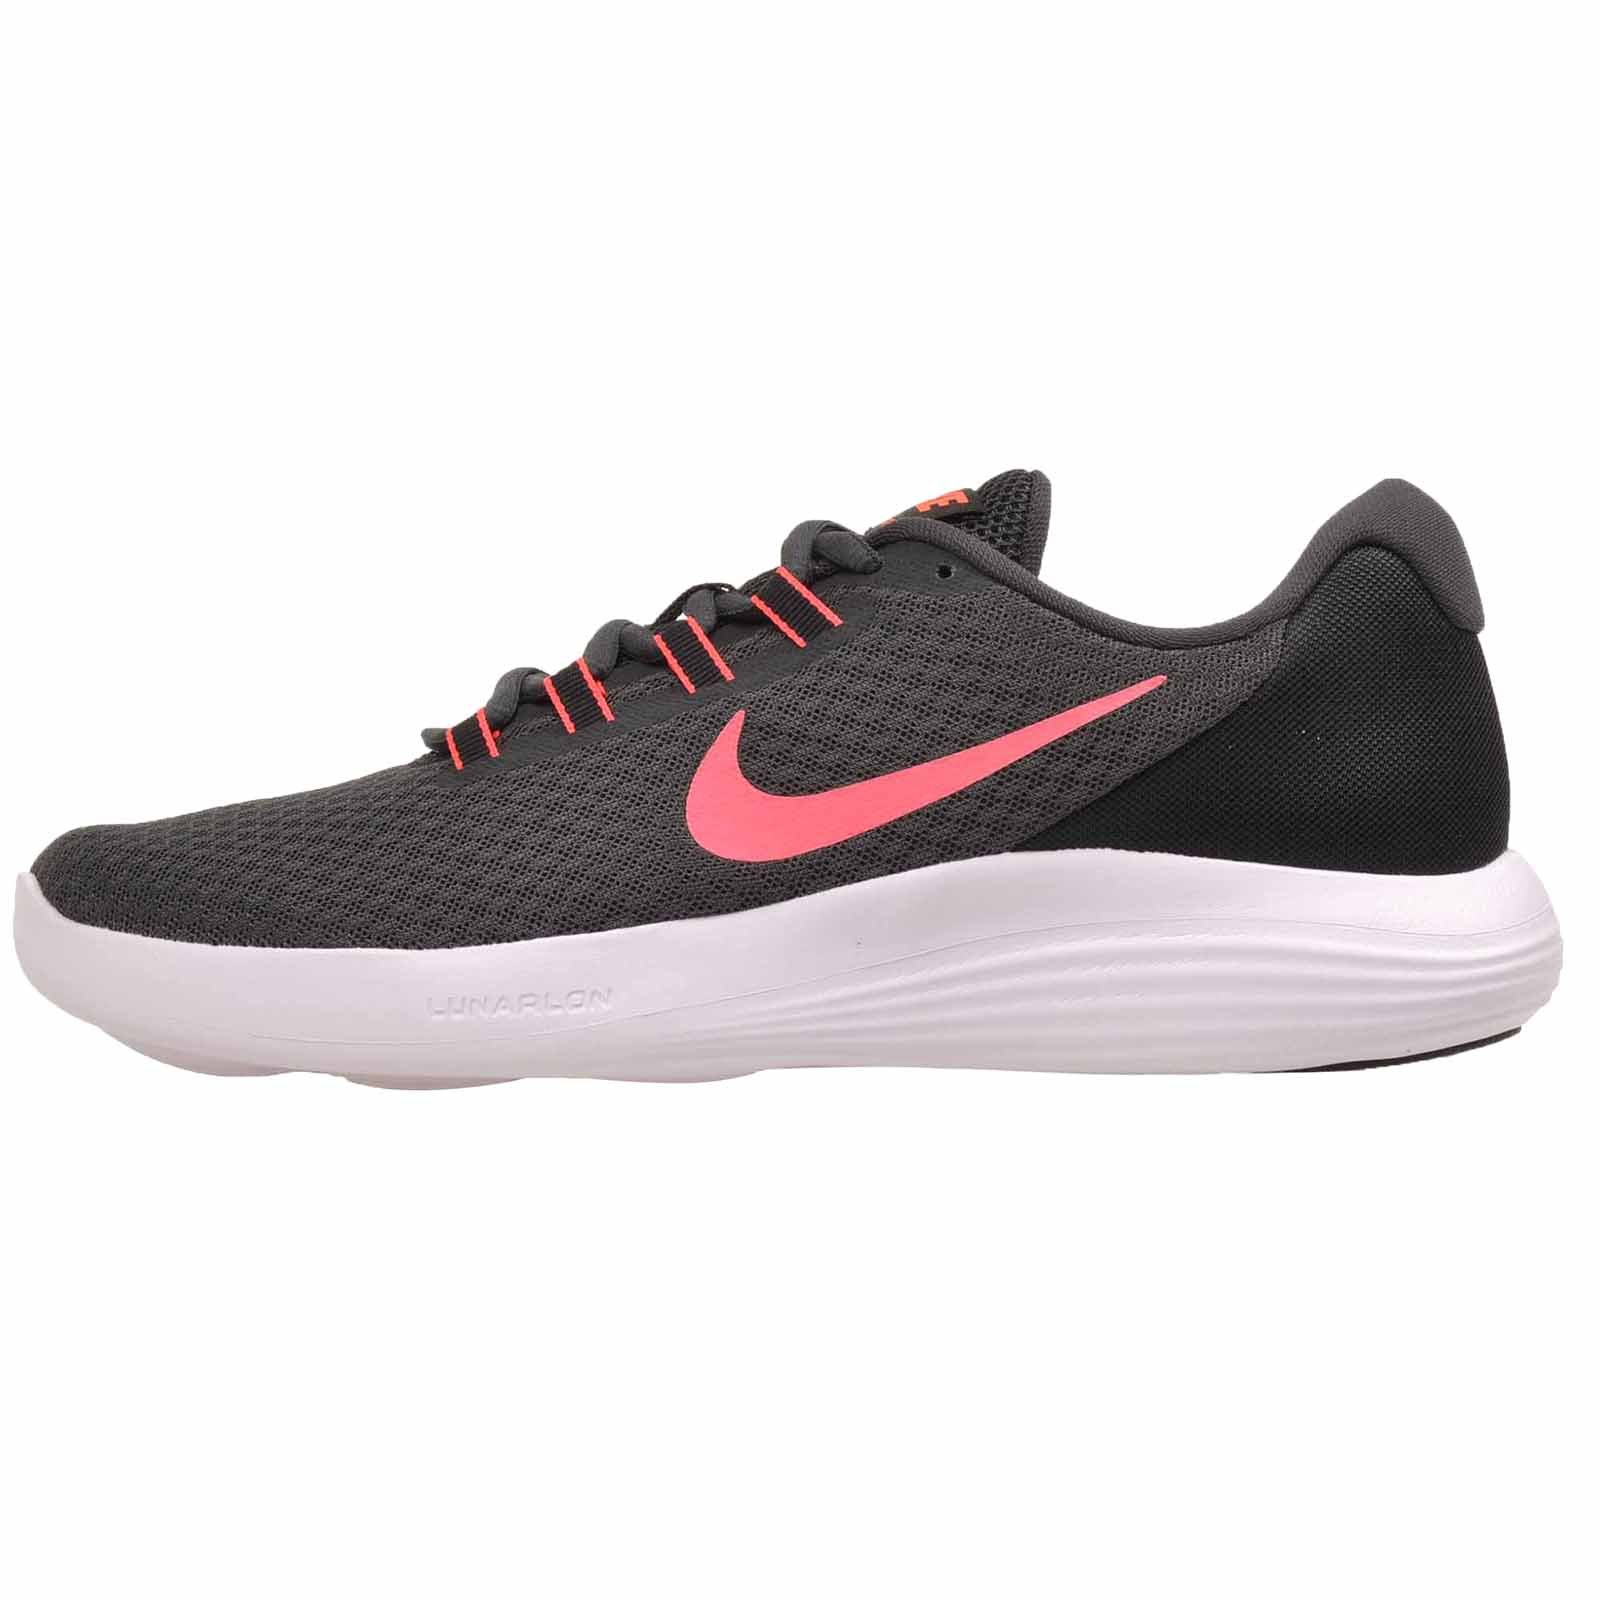 NIKE Womens Luanrconverge Running Trainers (10.5 B(M) US, Anthracite Hot Punch Black 002)